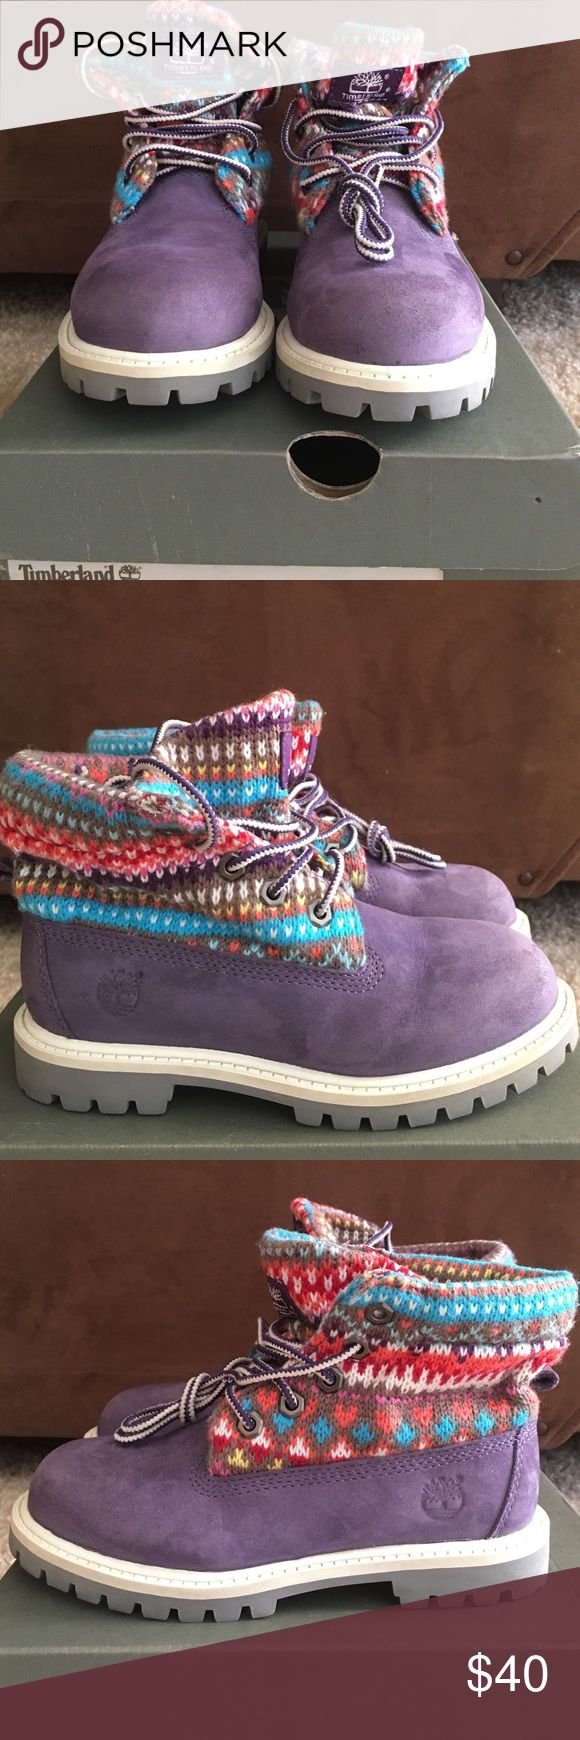 Purple Timberlands Size 12 little girls Timberlands. Worn twice and In excellent condition. Timberland Shoes Boots